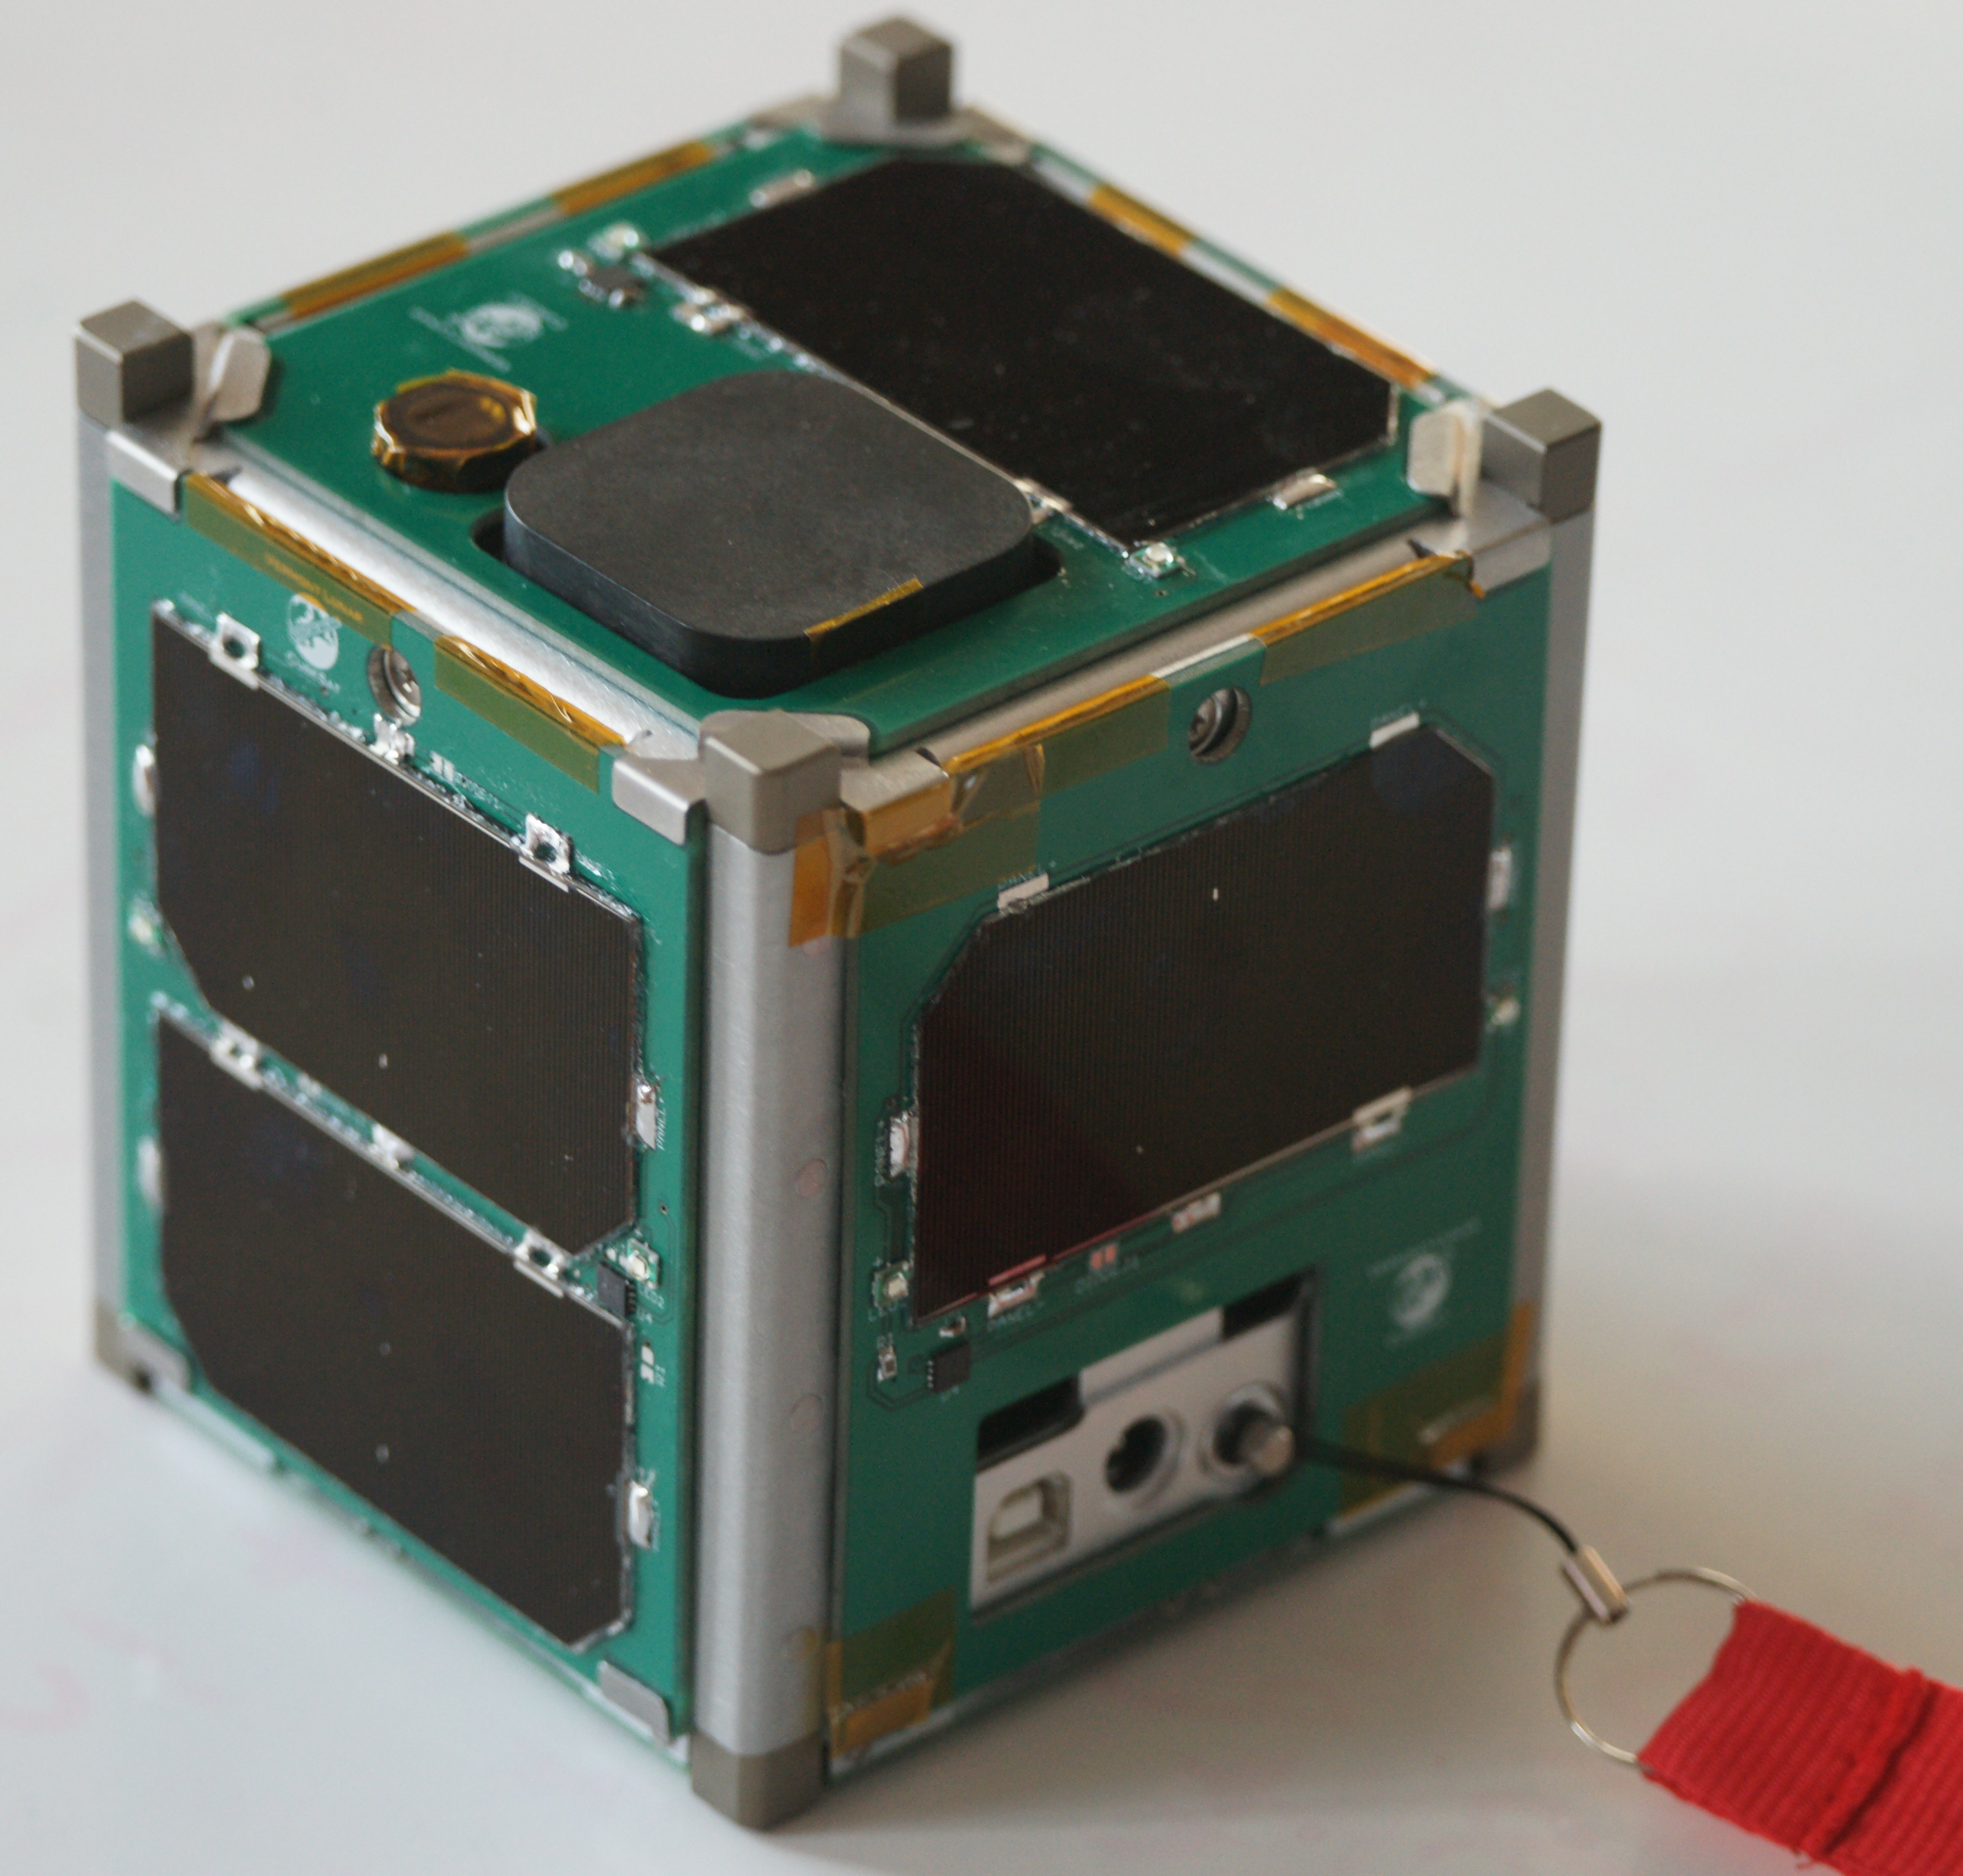 Small satellites, including CubeSats, are playing an increasingly larger role in exploration, technology demonstration, scientific research and educational investigations at NASA. Credits: NASA